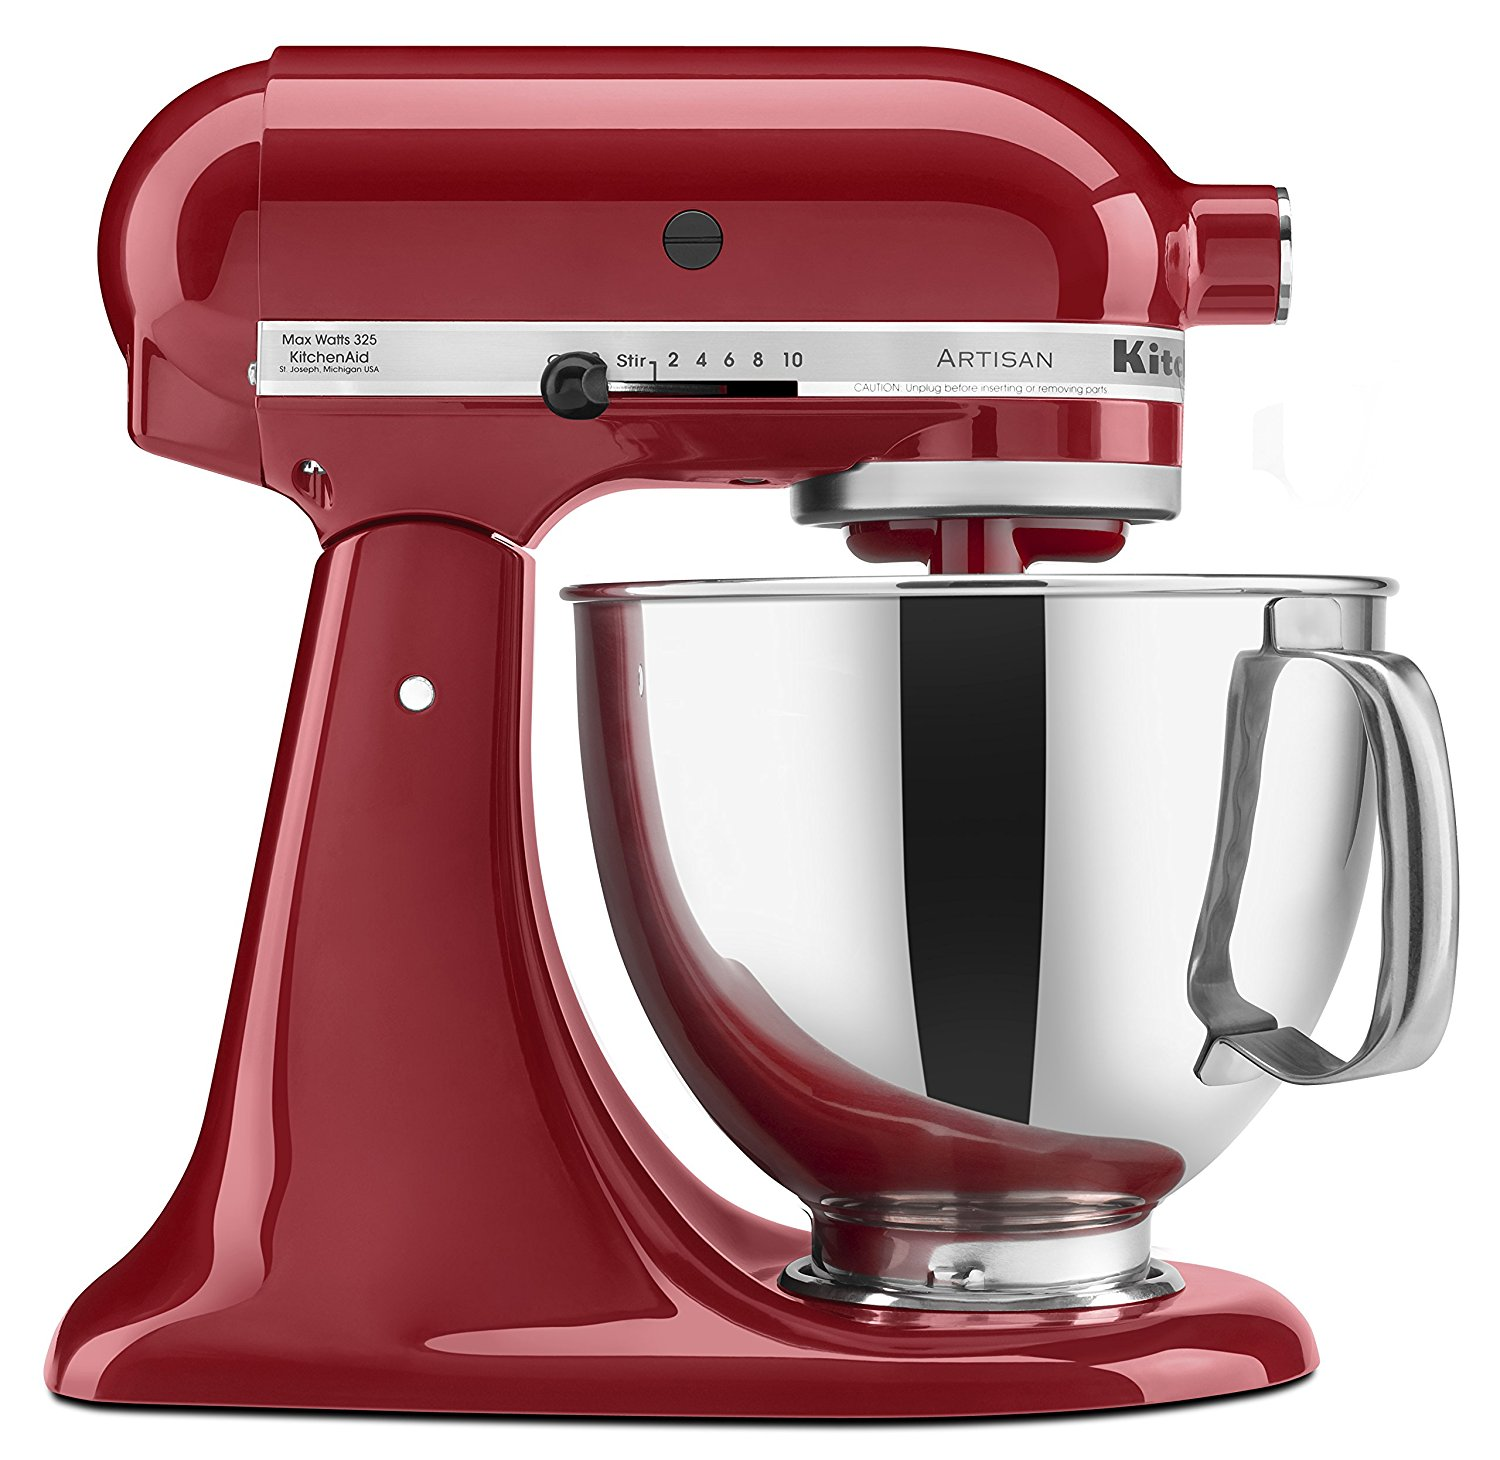 Kitchenaid red appliances mixer 5qt